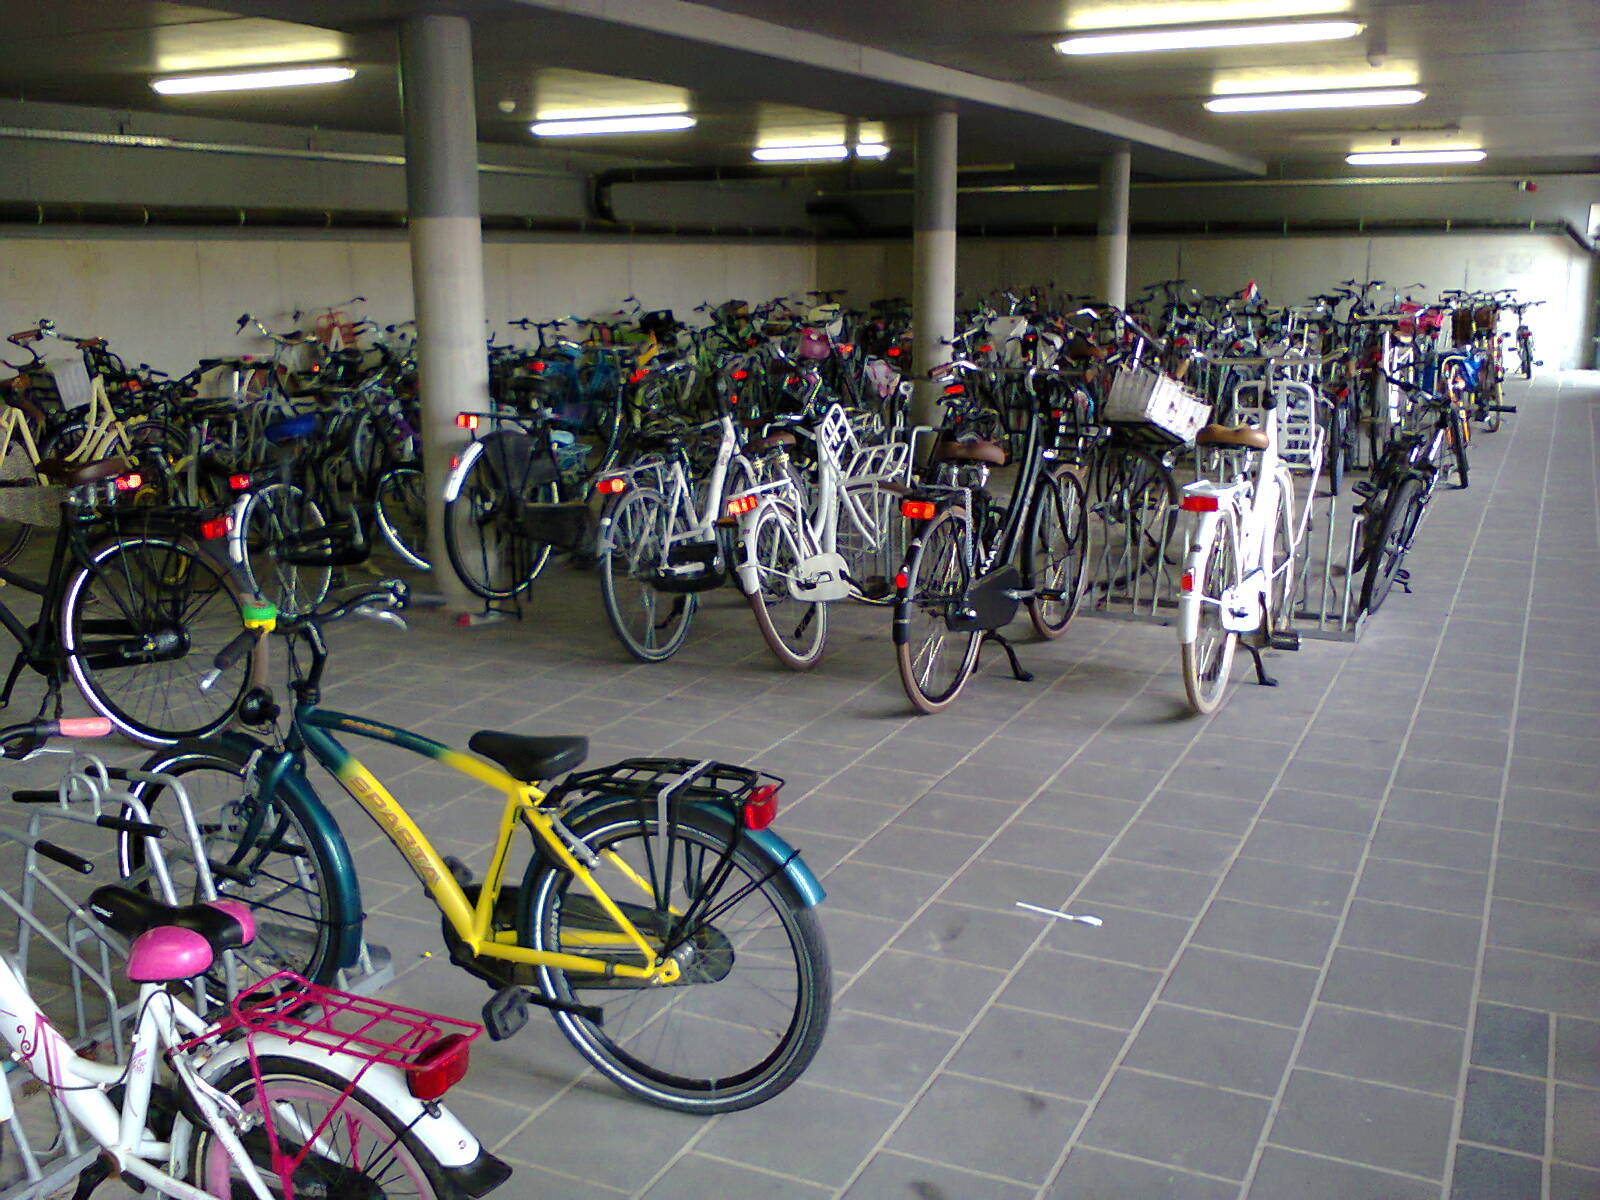 School cycle parking in Assen